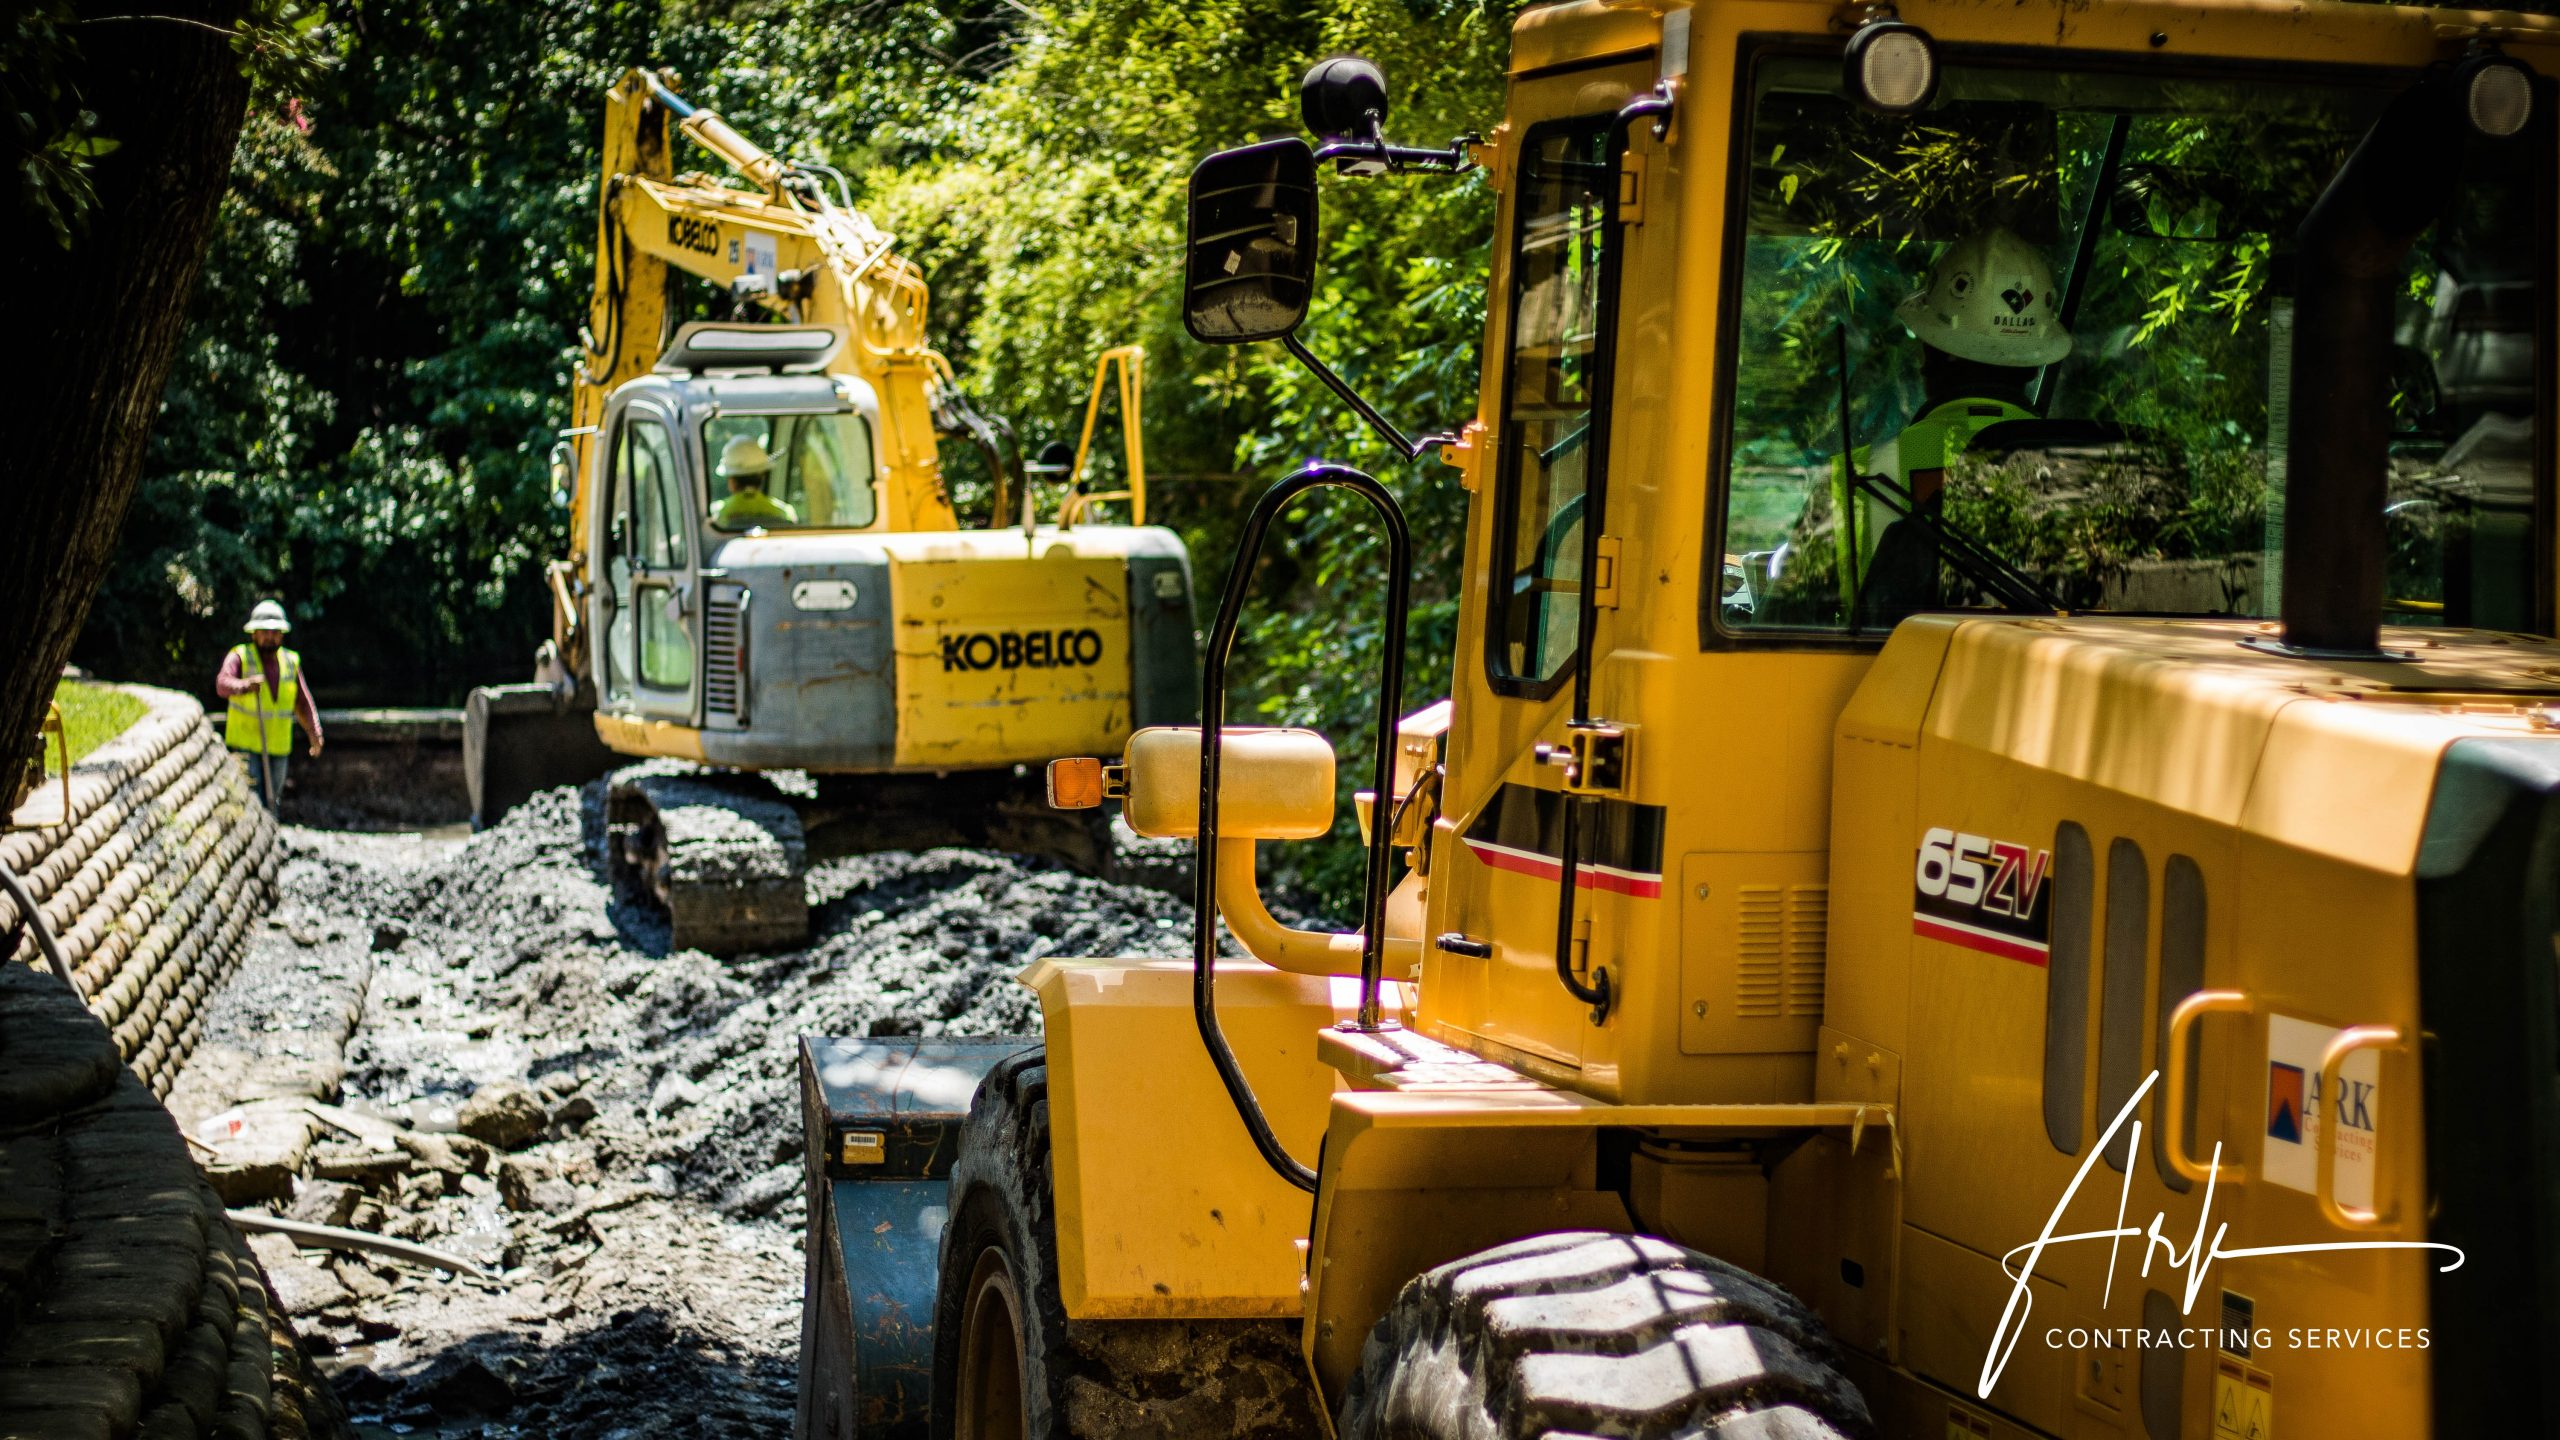 Ark Contracting Services performing an excavation in a neighborhood in the Dallas / Ft. Worth area in Texas.